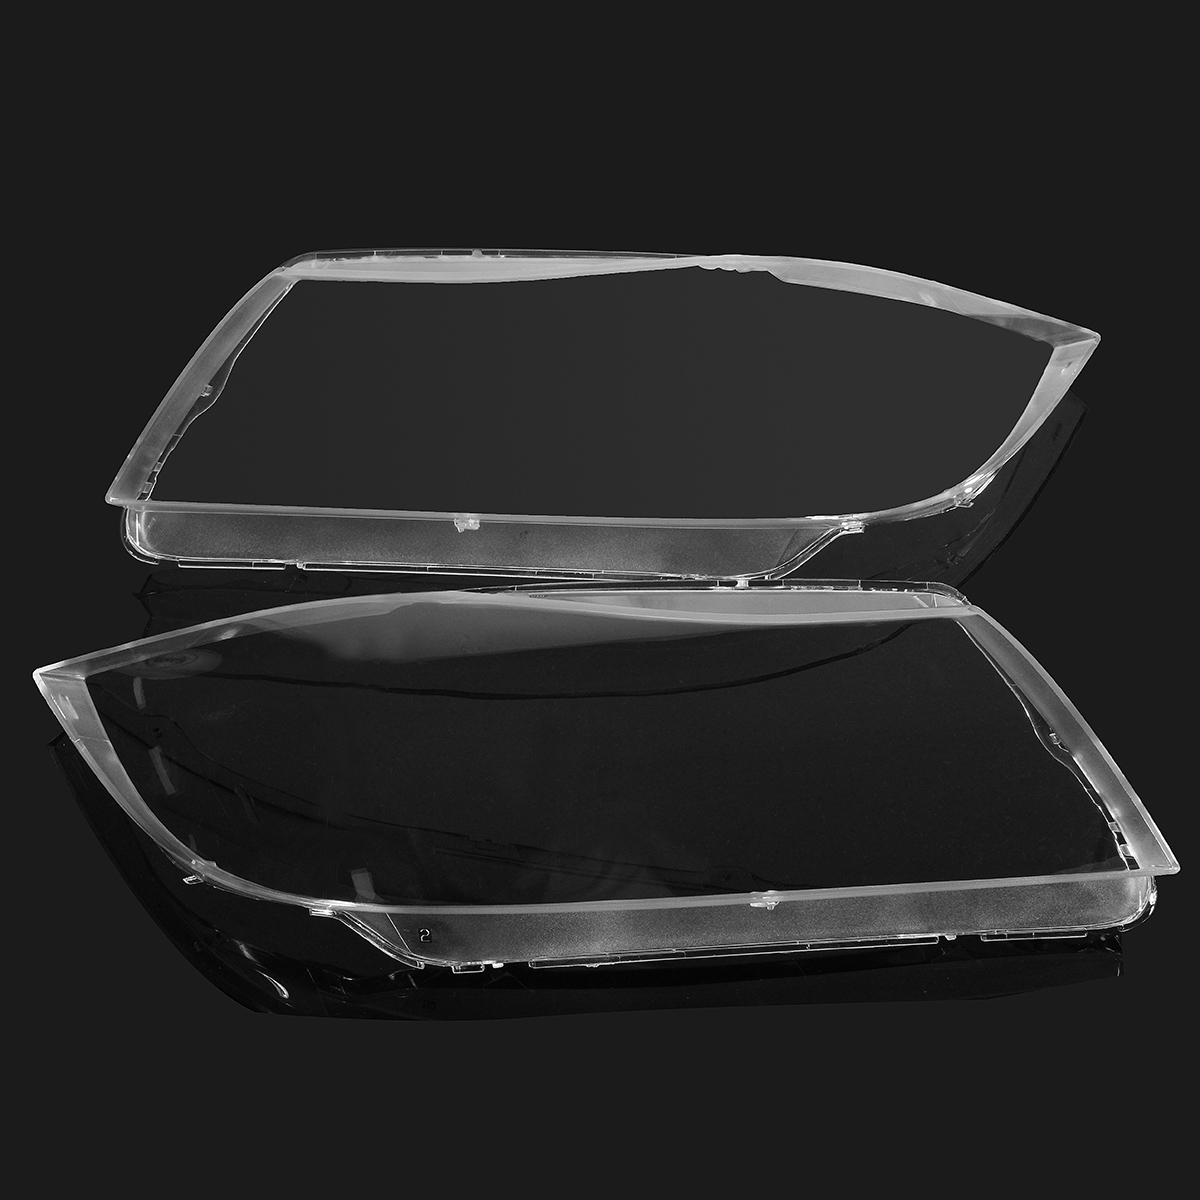 New Pair Front Left+Right Headlight Headlamp Clear Lens Plastic Cover For BMW E90/E91 04 07 4769886123 Car styling